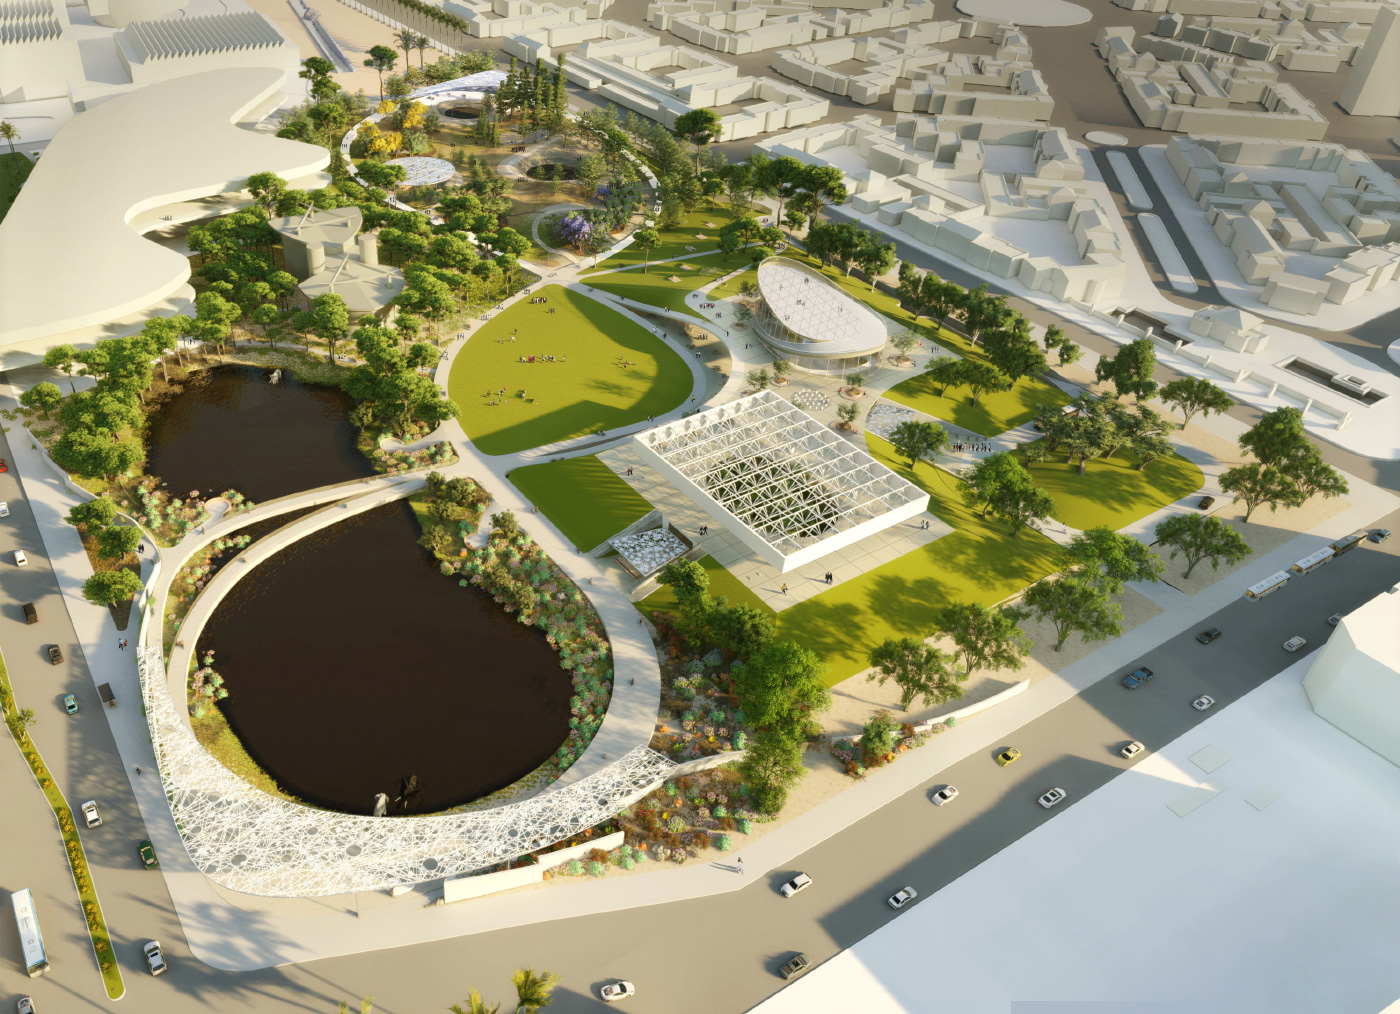 Aerial rendering of a loop system for the La Brea Tar Pits